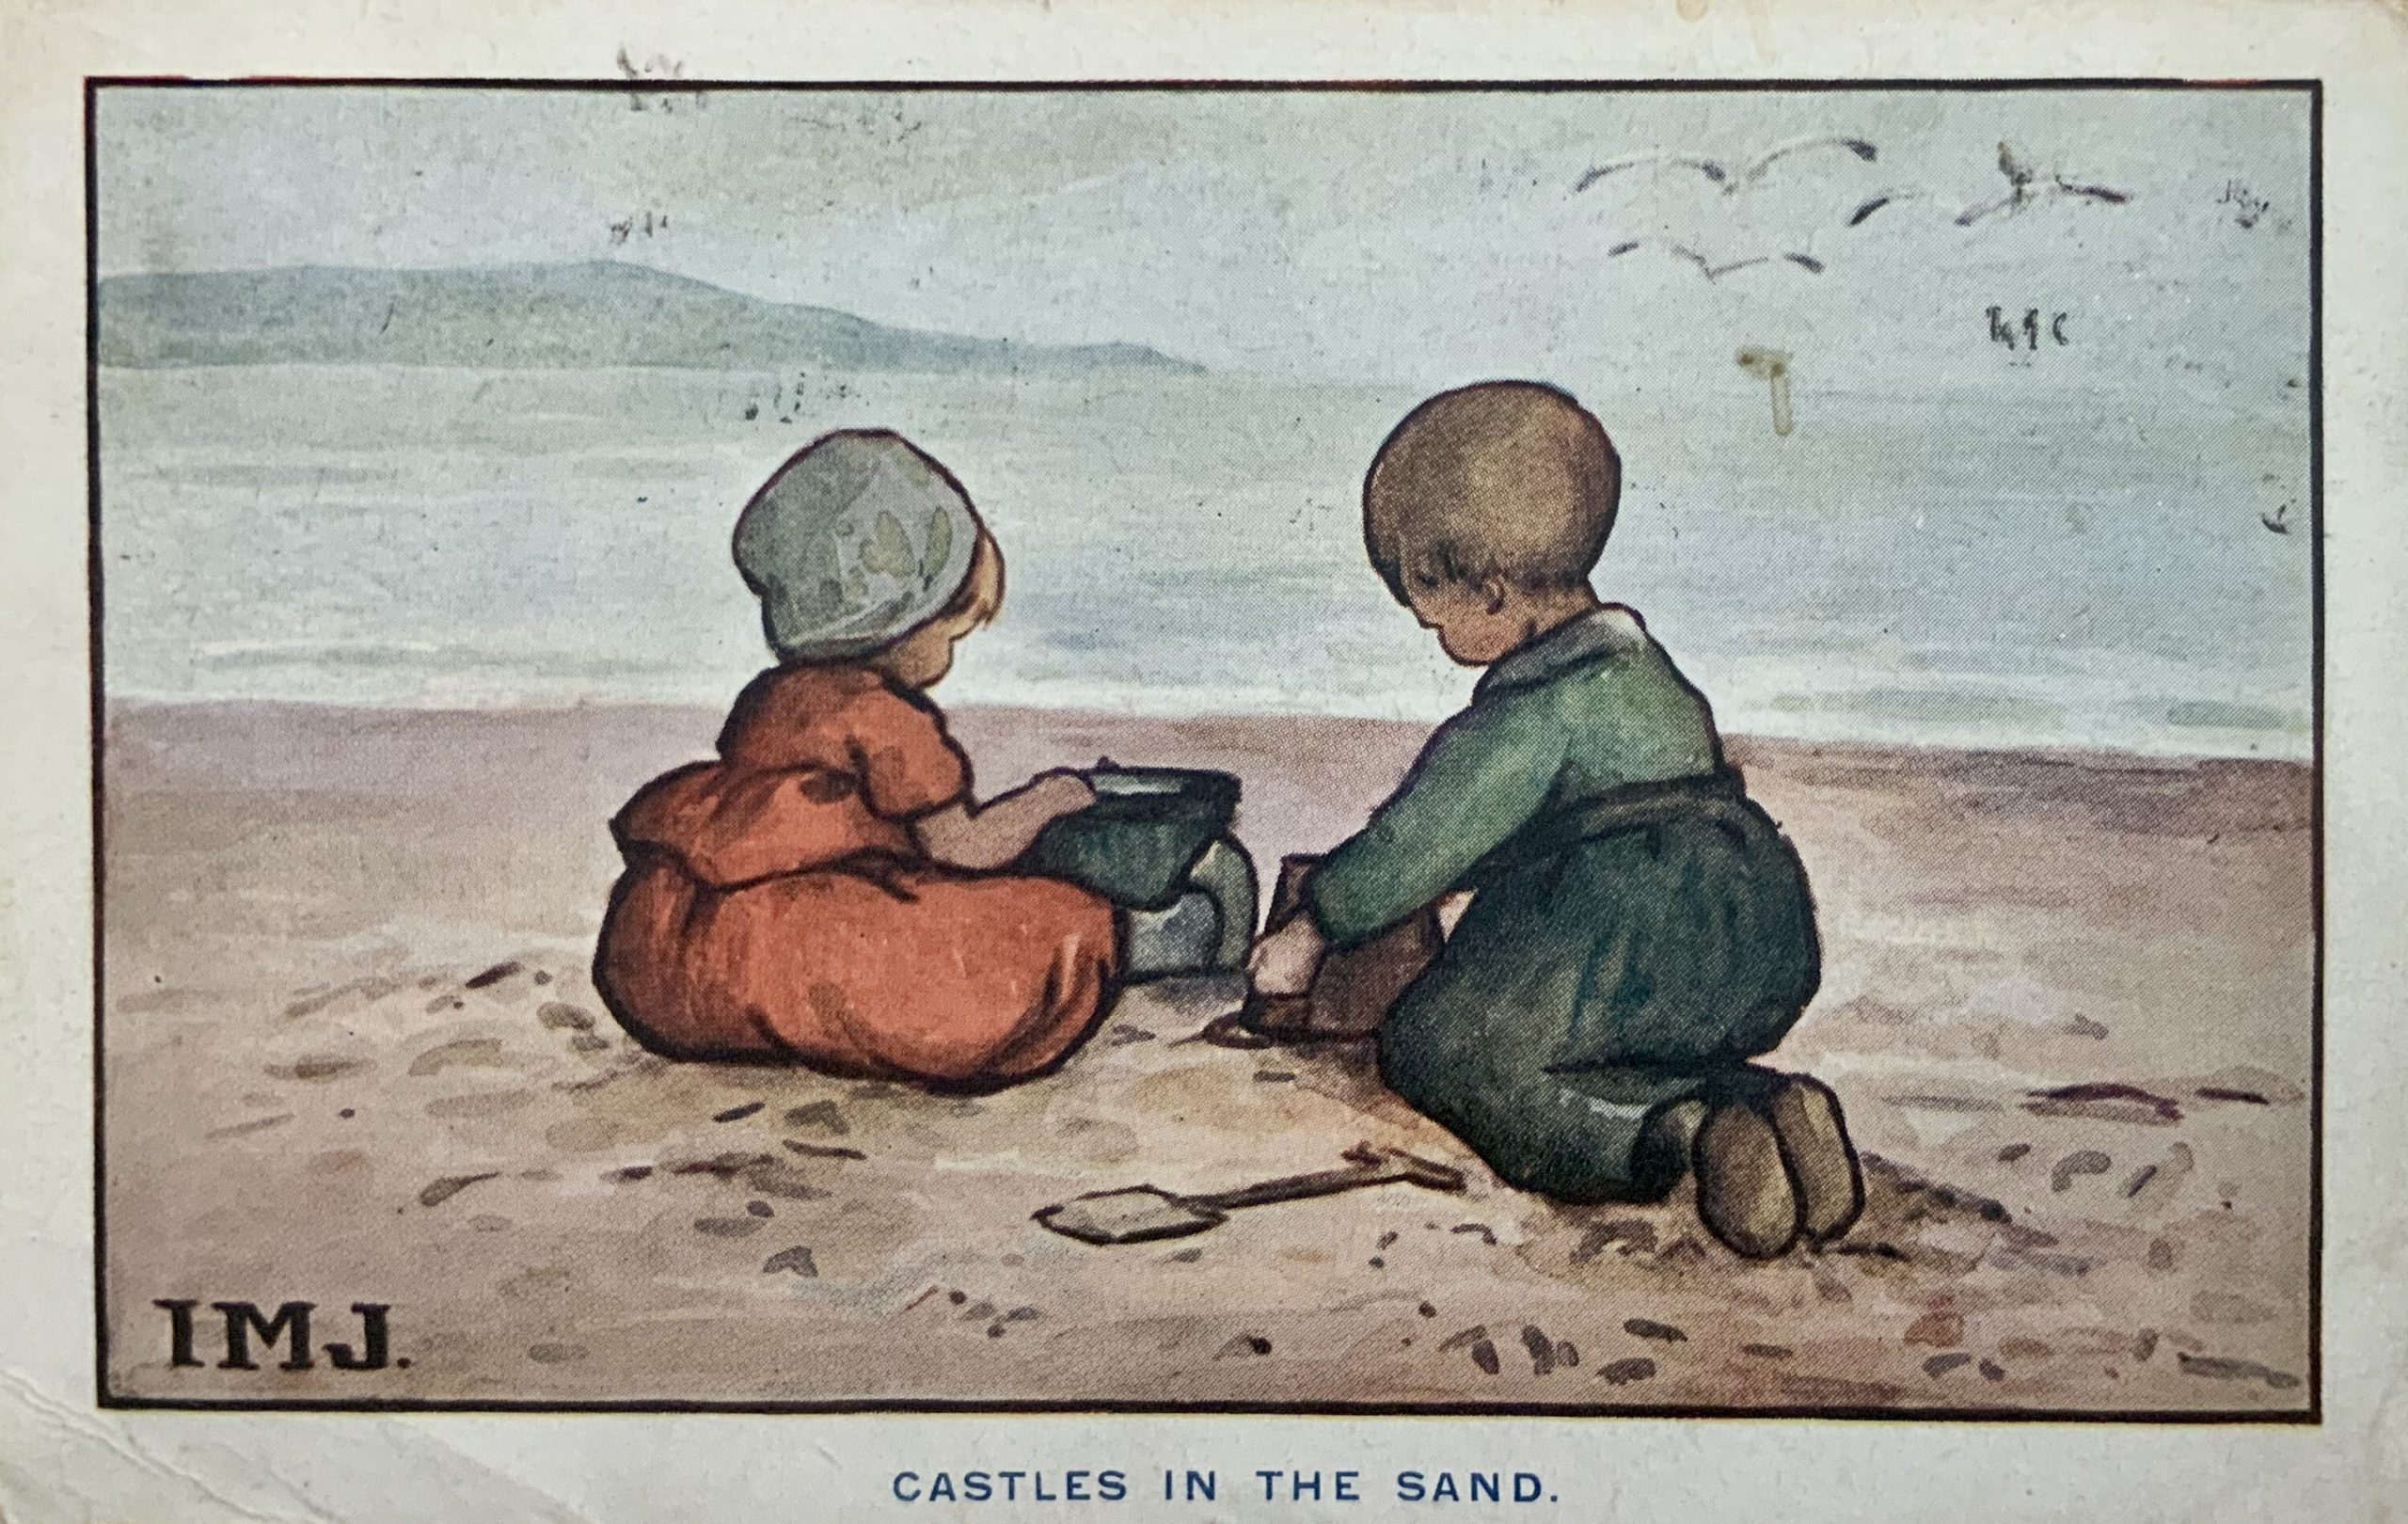 Castles in the Sand by Ivy Millicent James